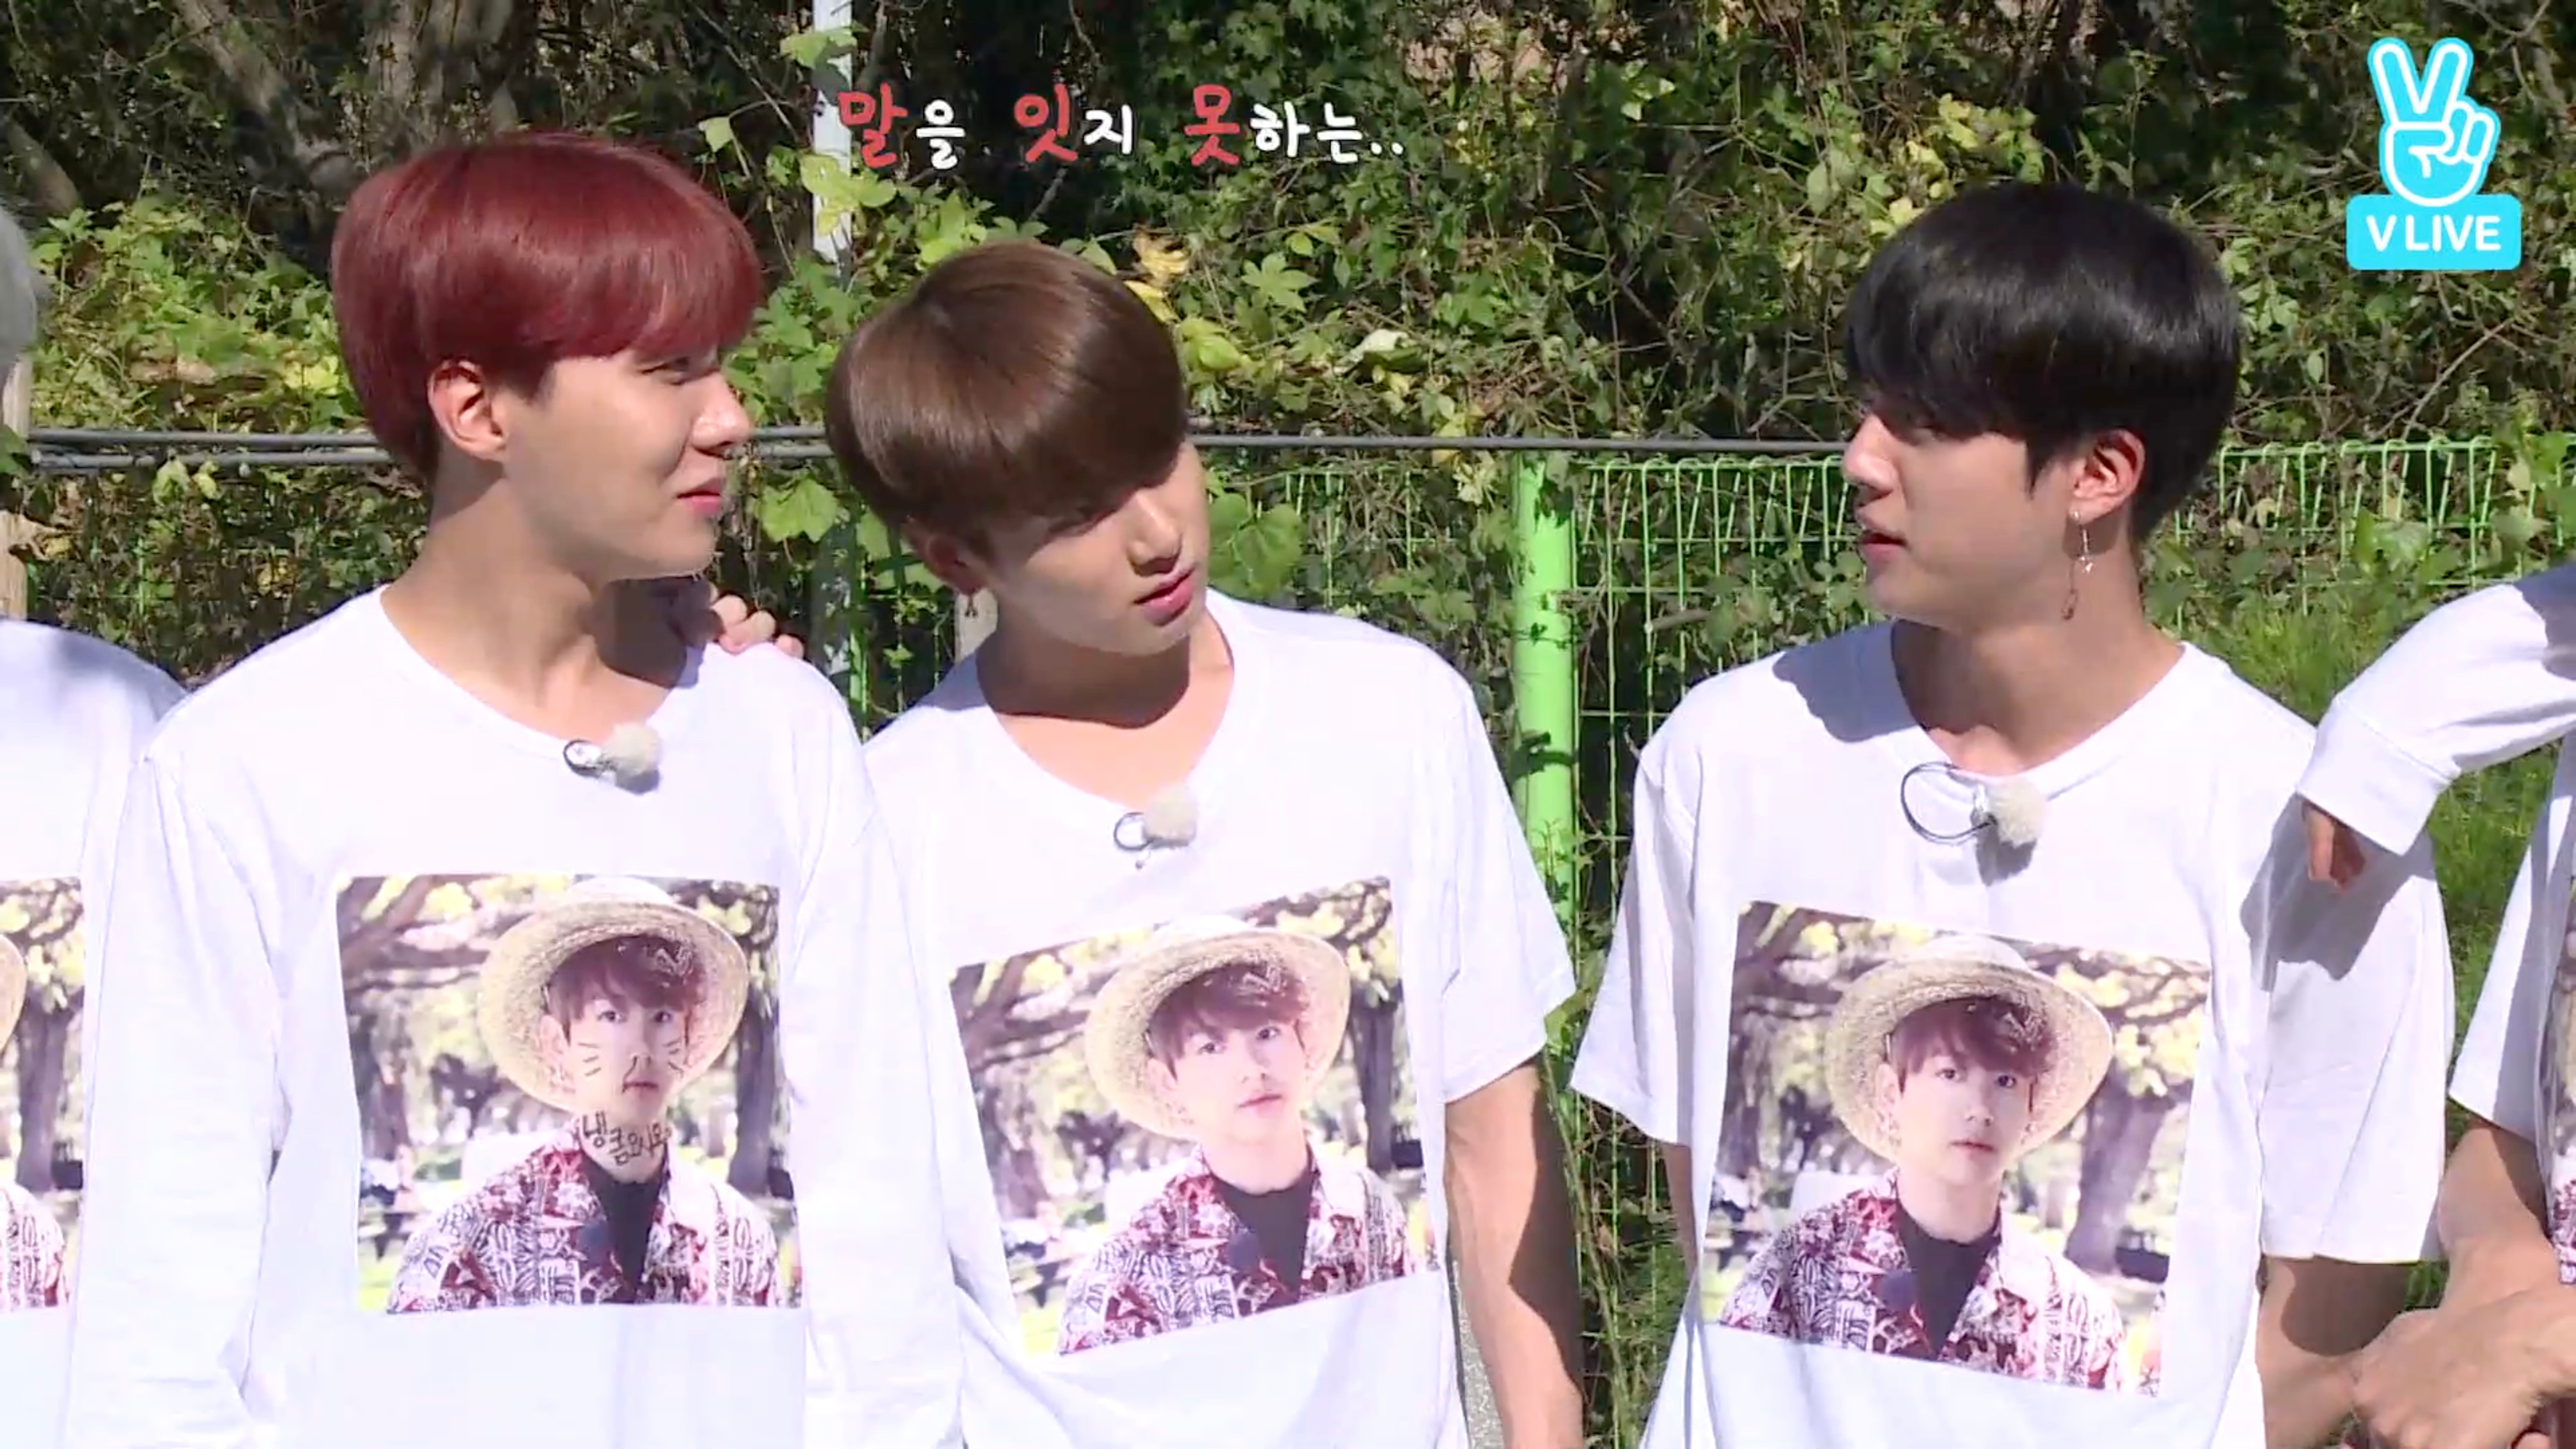 Run bts episode 27 eng sub